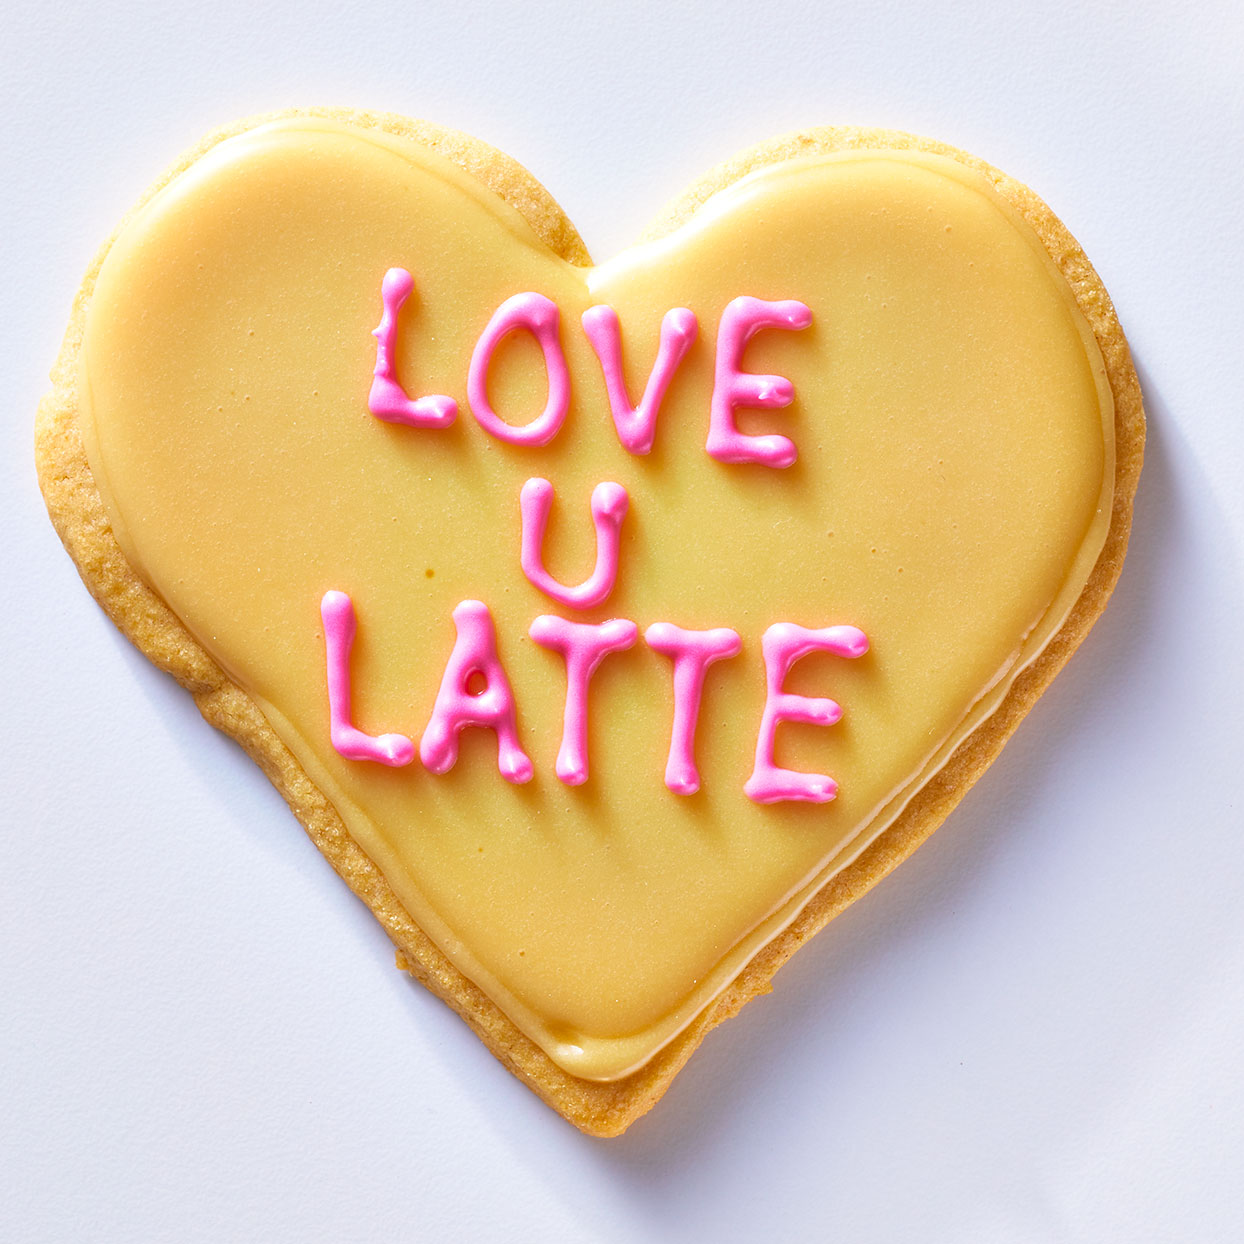 Love U Latte Conversation Heart Cookie